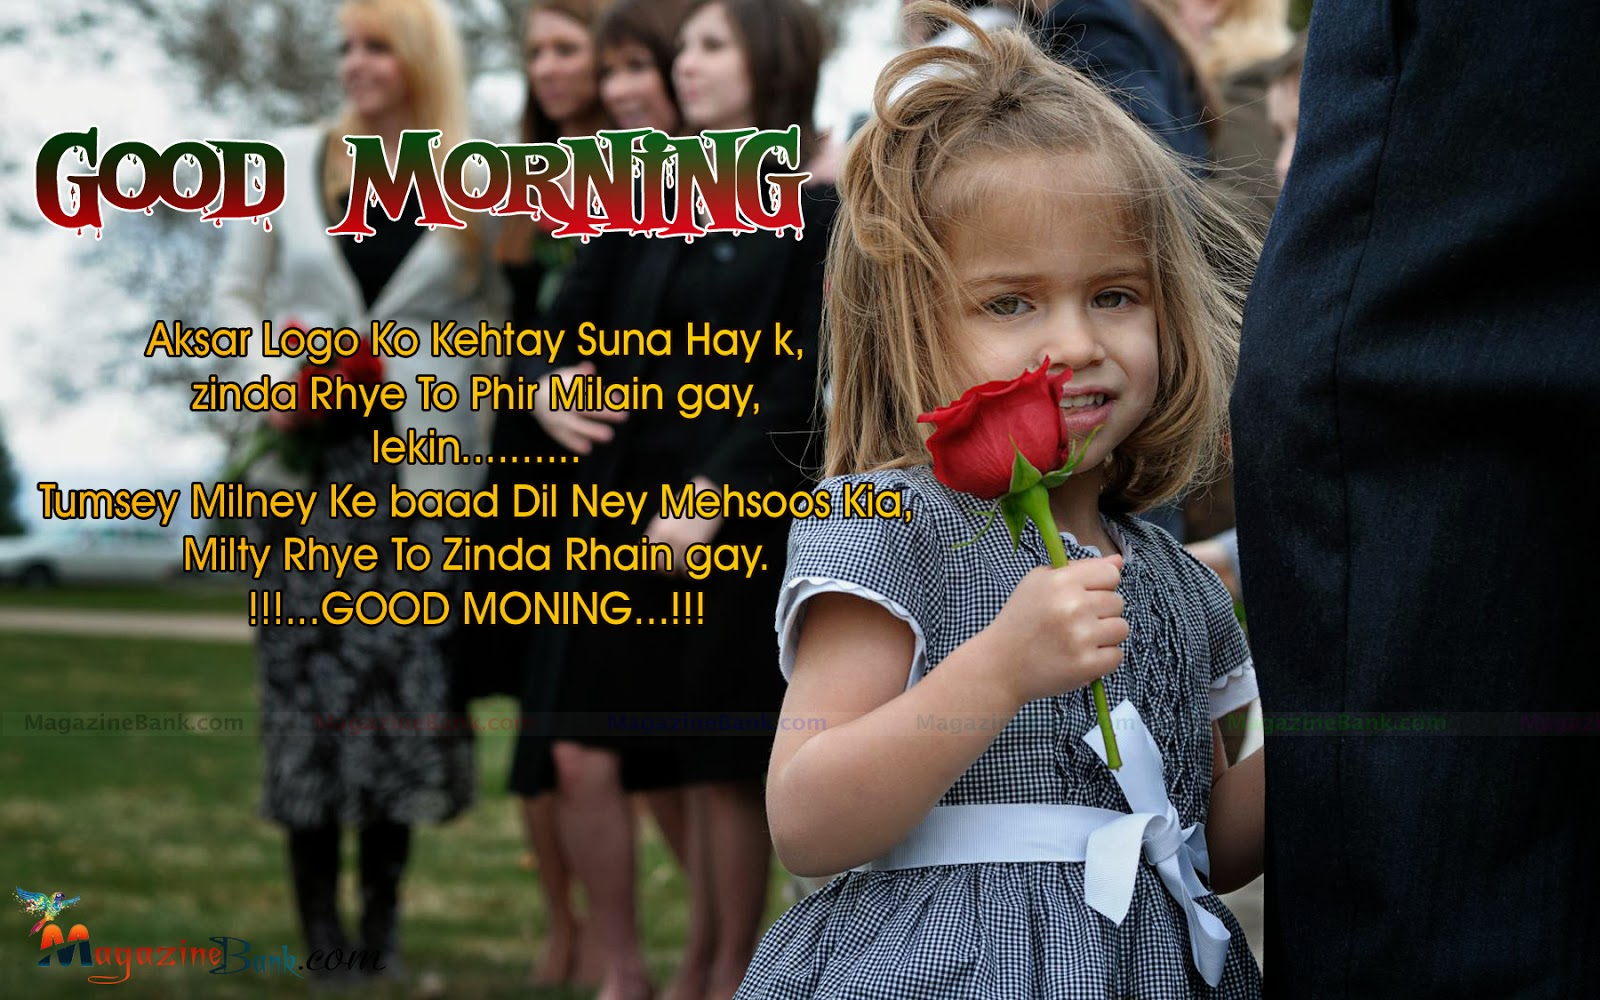 Good Morning Quotes For My Girlfriend: Love SMS In Hindi Messages English In Urdu In Marathi